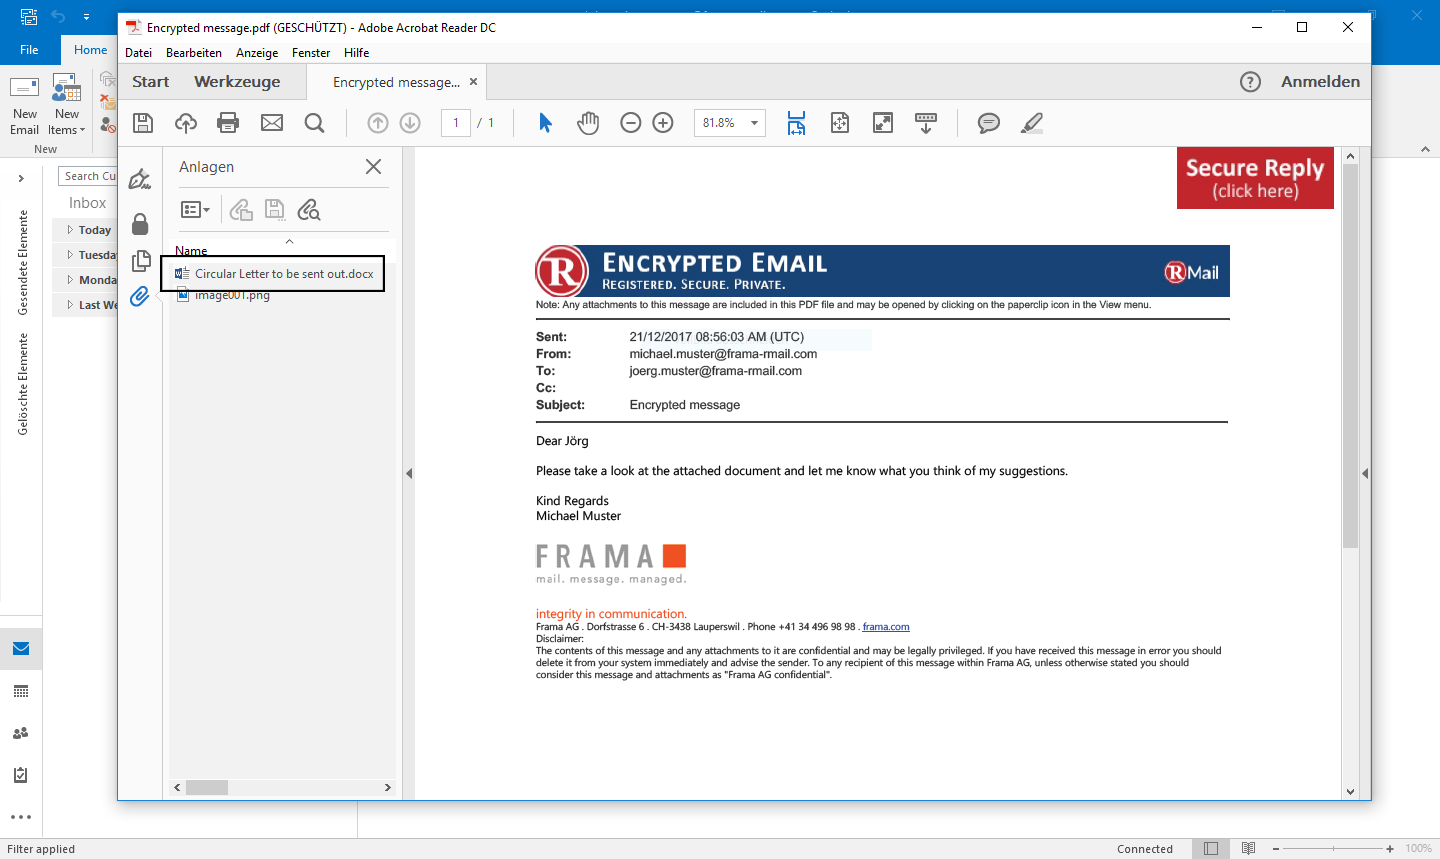 Receiving an password encrypted RMail - Step 3